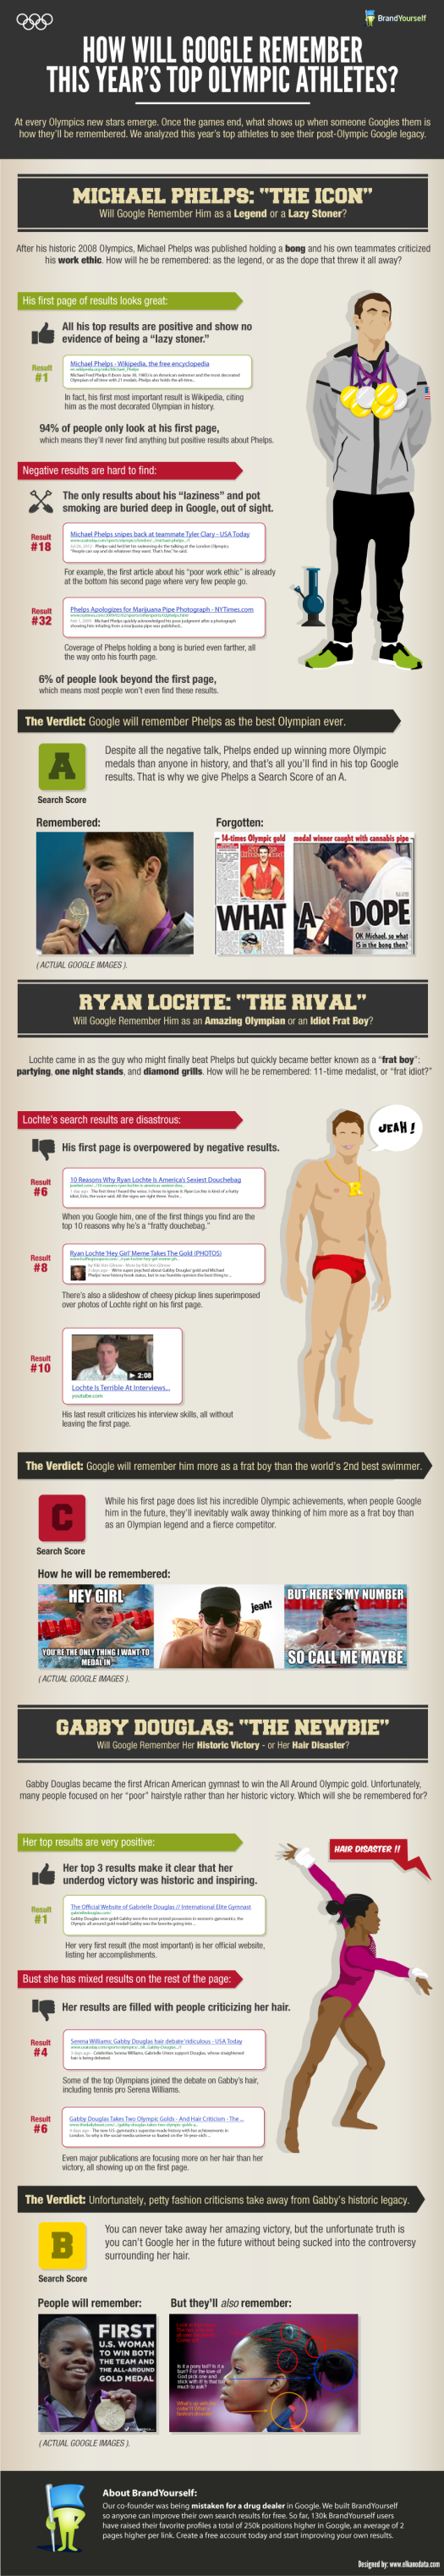 How Google Remembers Top 2012 Olympians [INFOGRAPHIC]